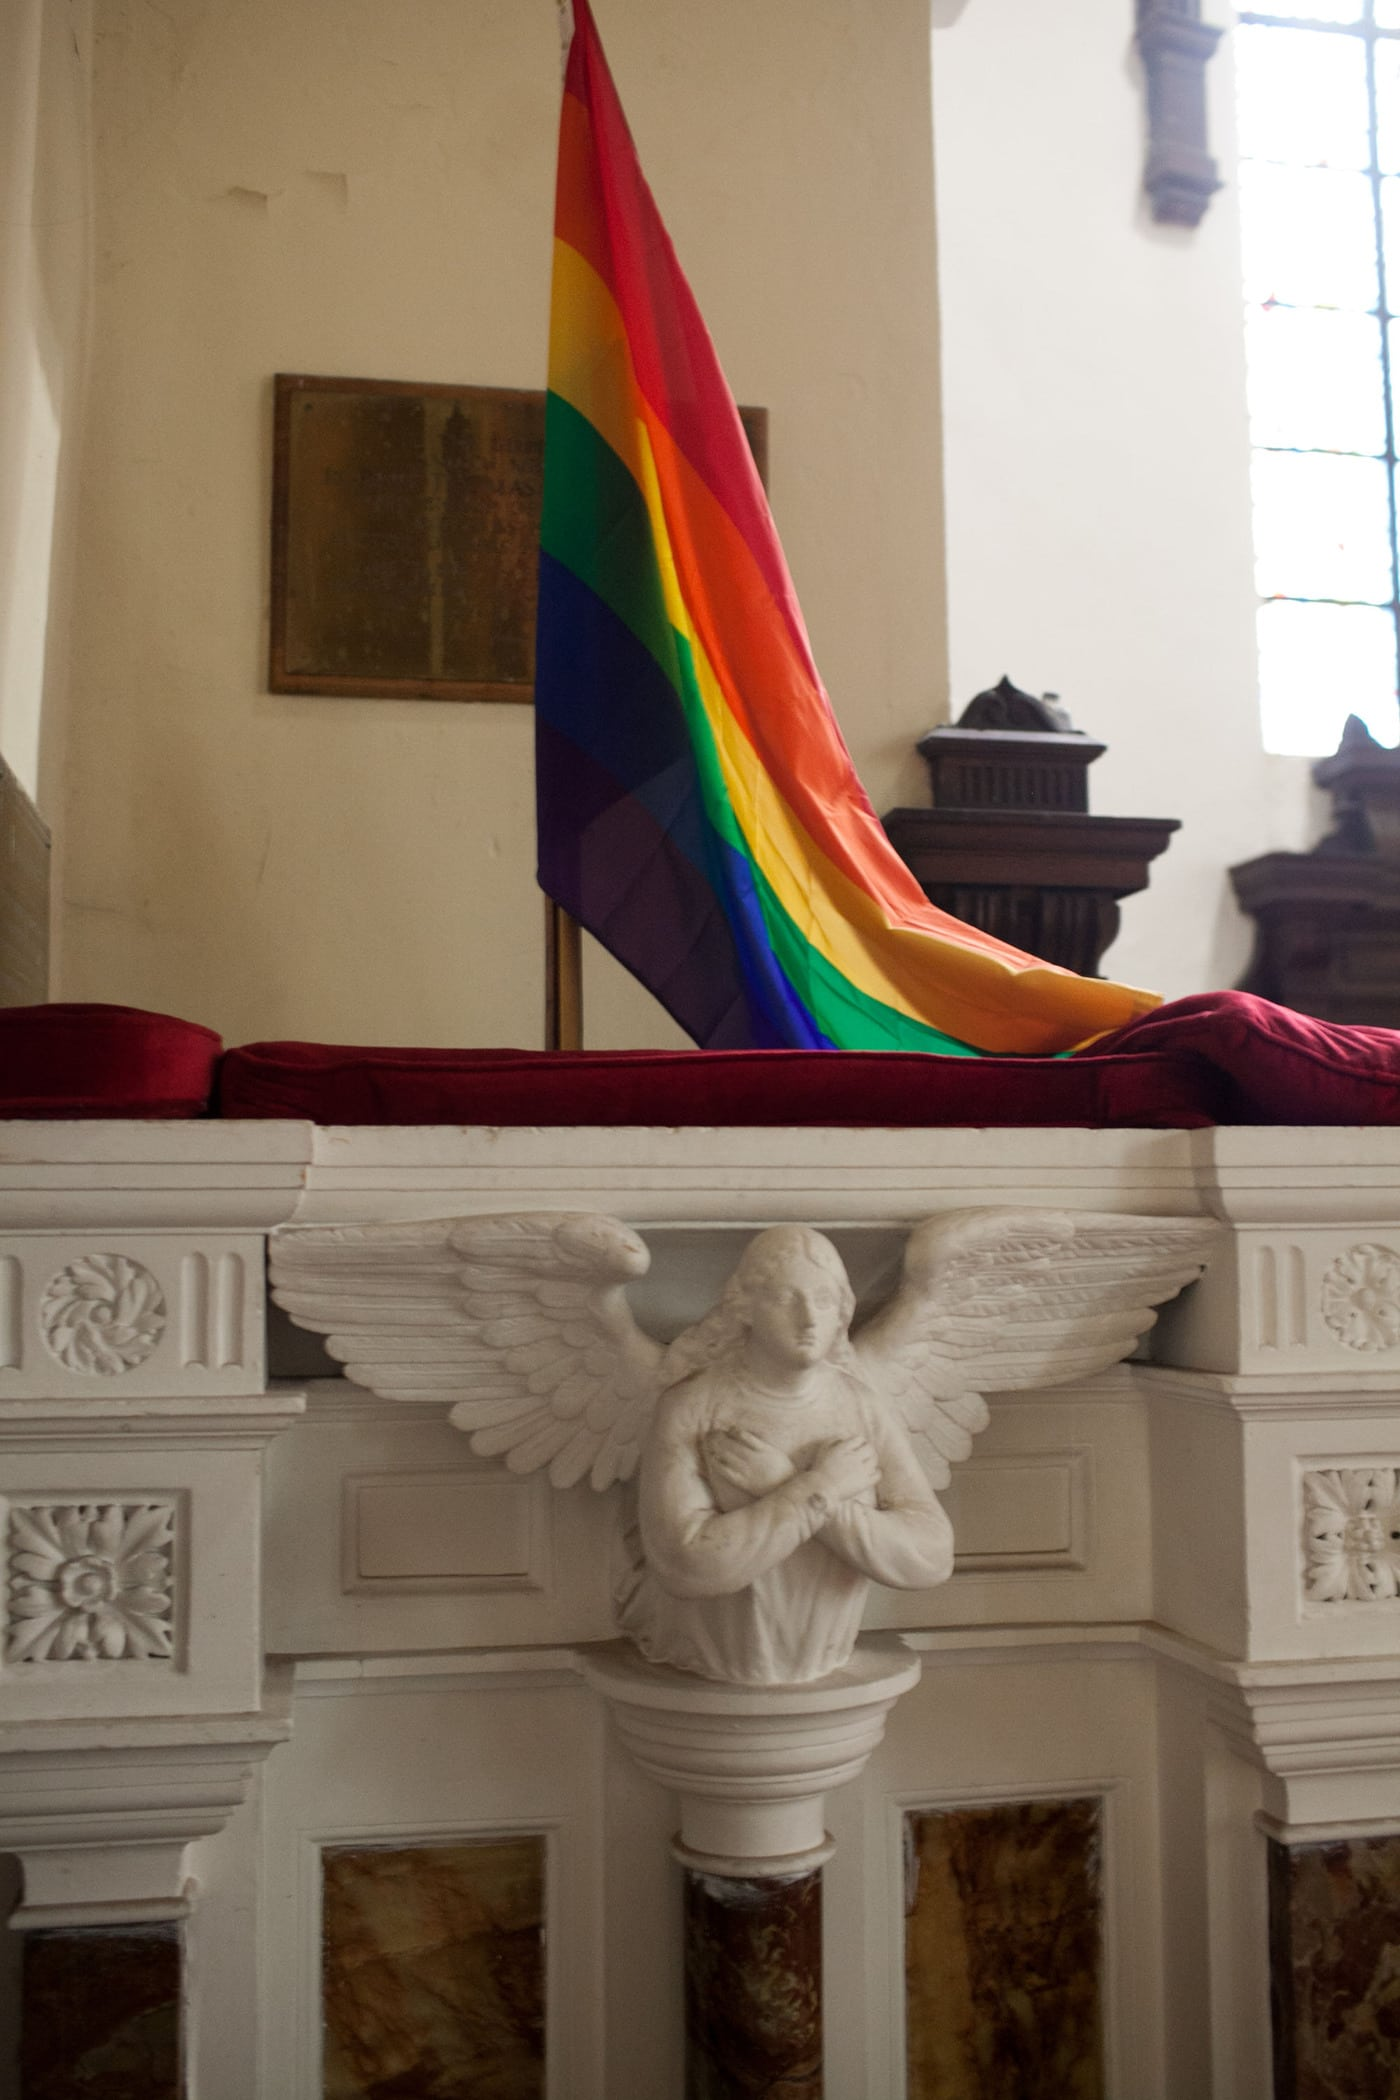 Gay flag at a church in Cork, Ireland